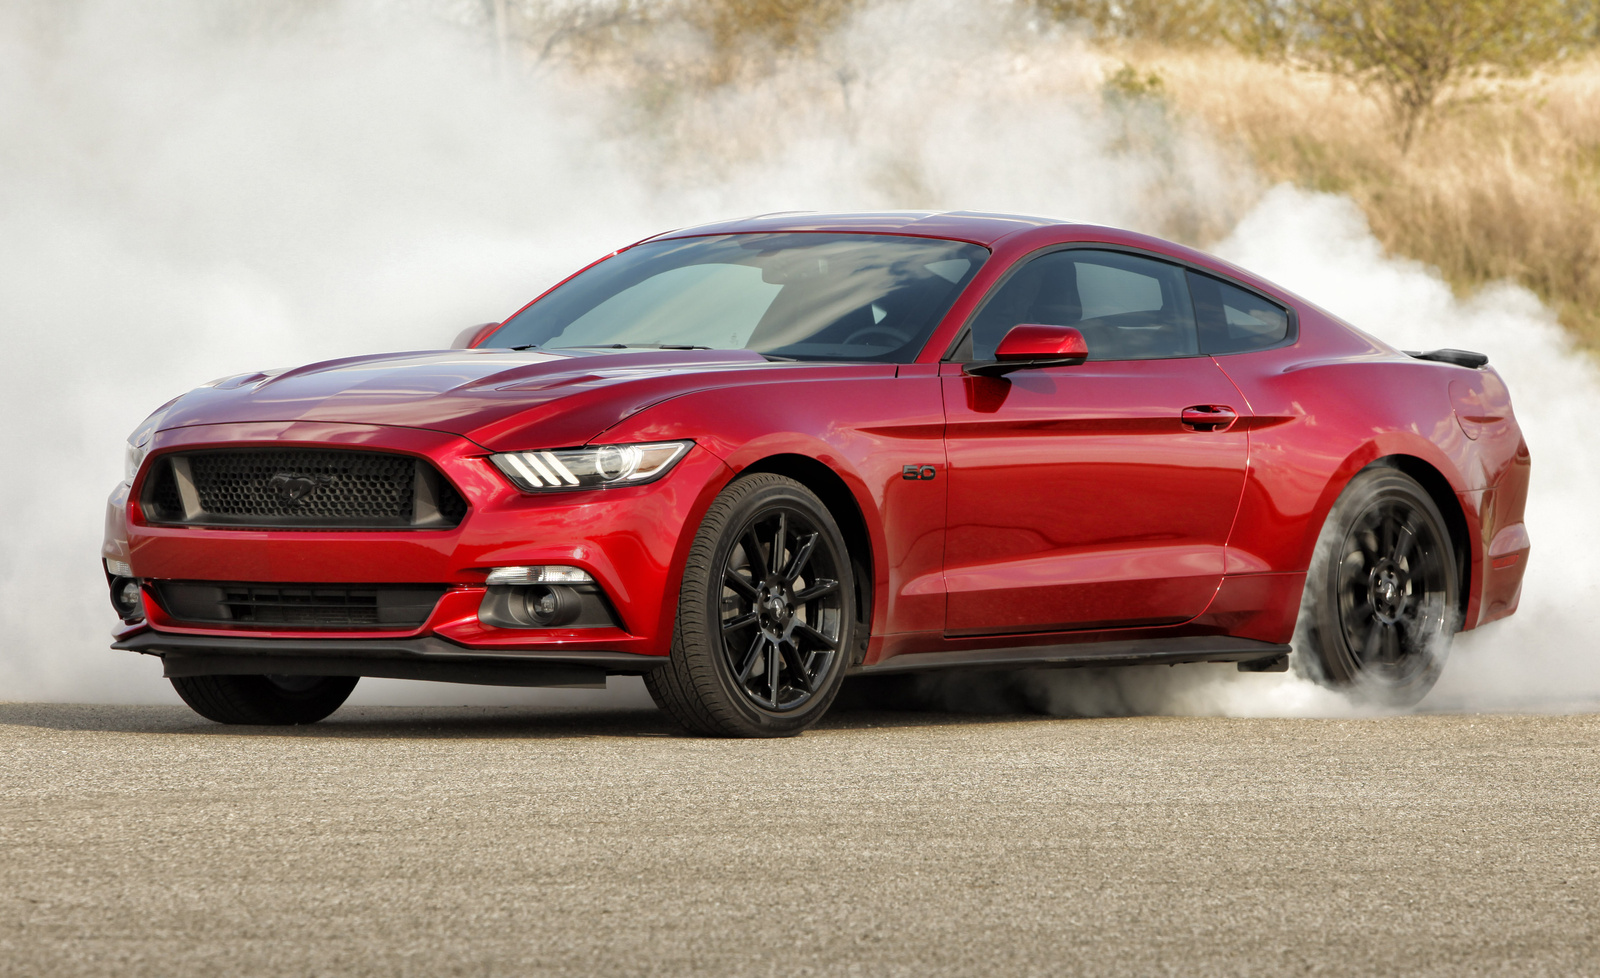 2016_ford_mustang pic 6407100038867140307 1600x1200 2015 ford mustang colors car autos gallery 2017 Mustang EcoBoost Coupe at webbmarketing.co